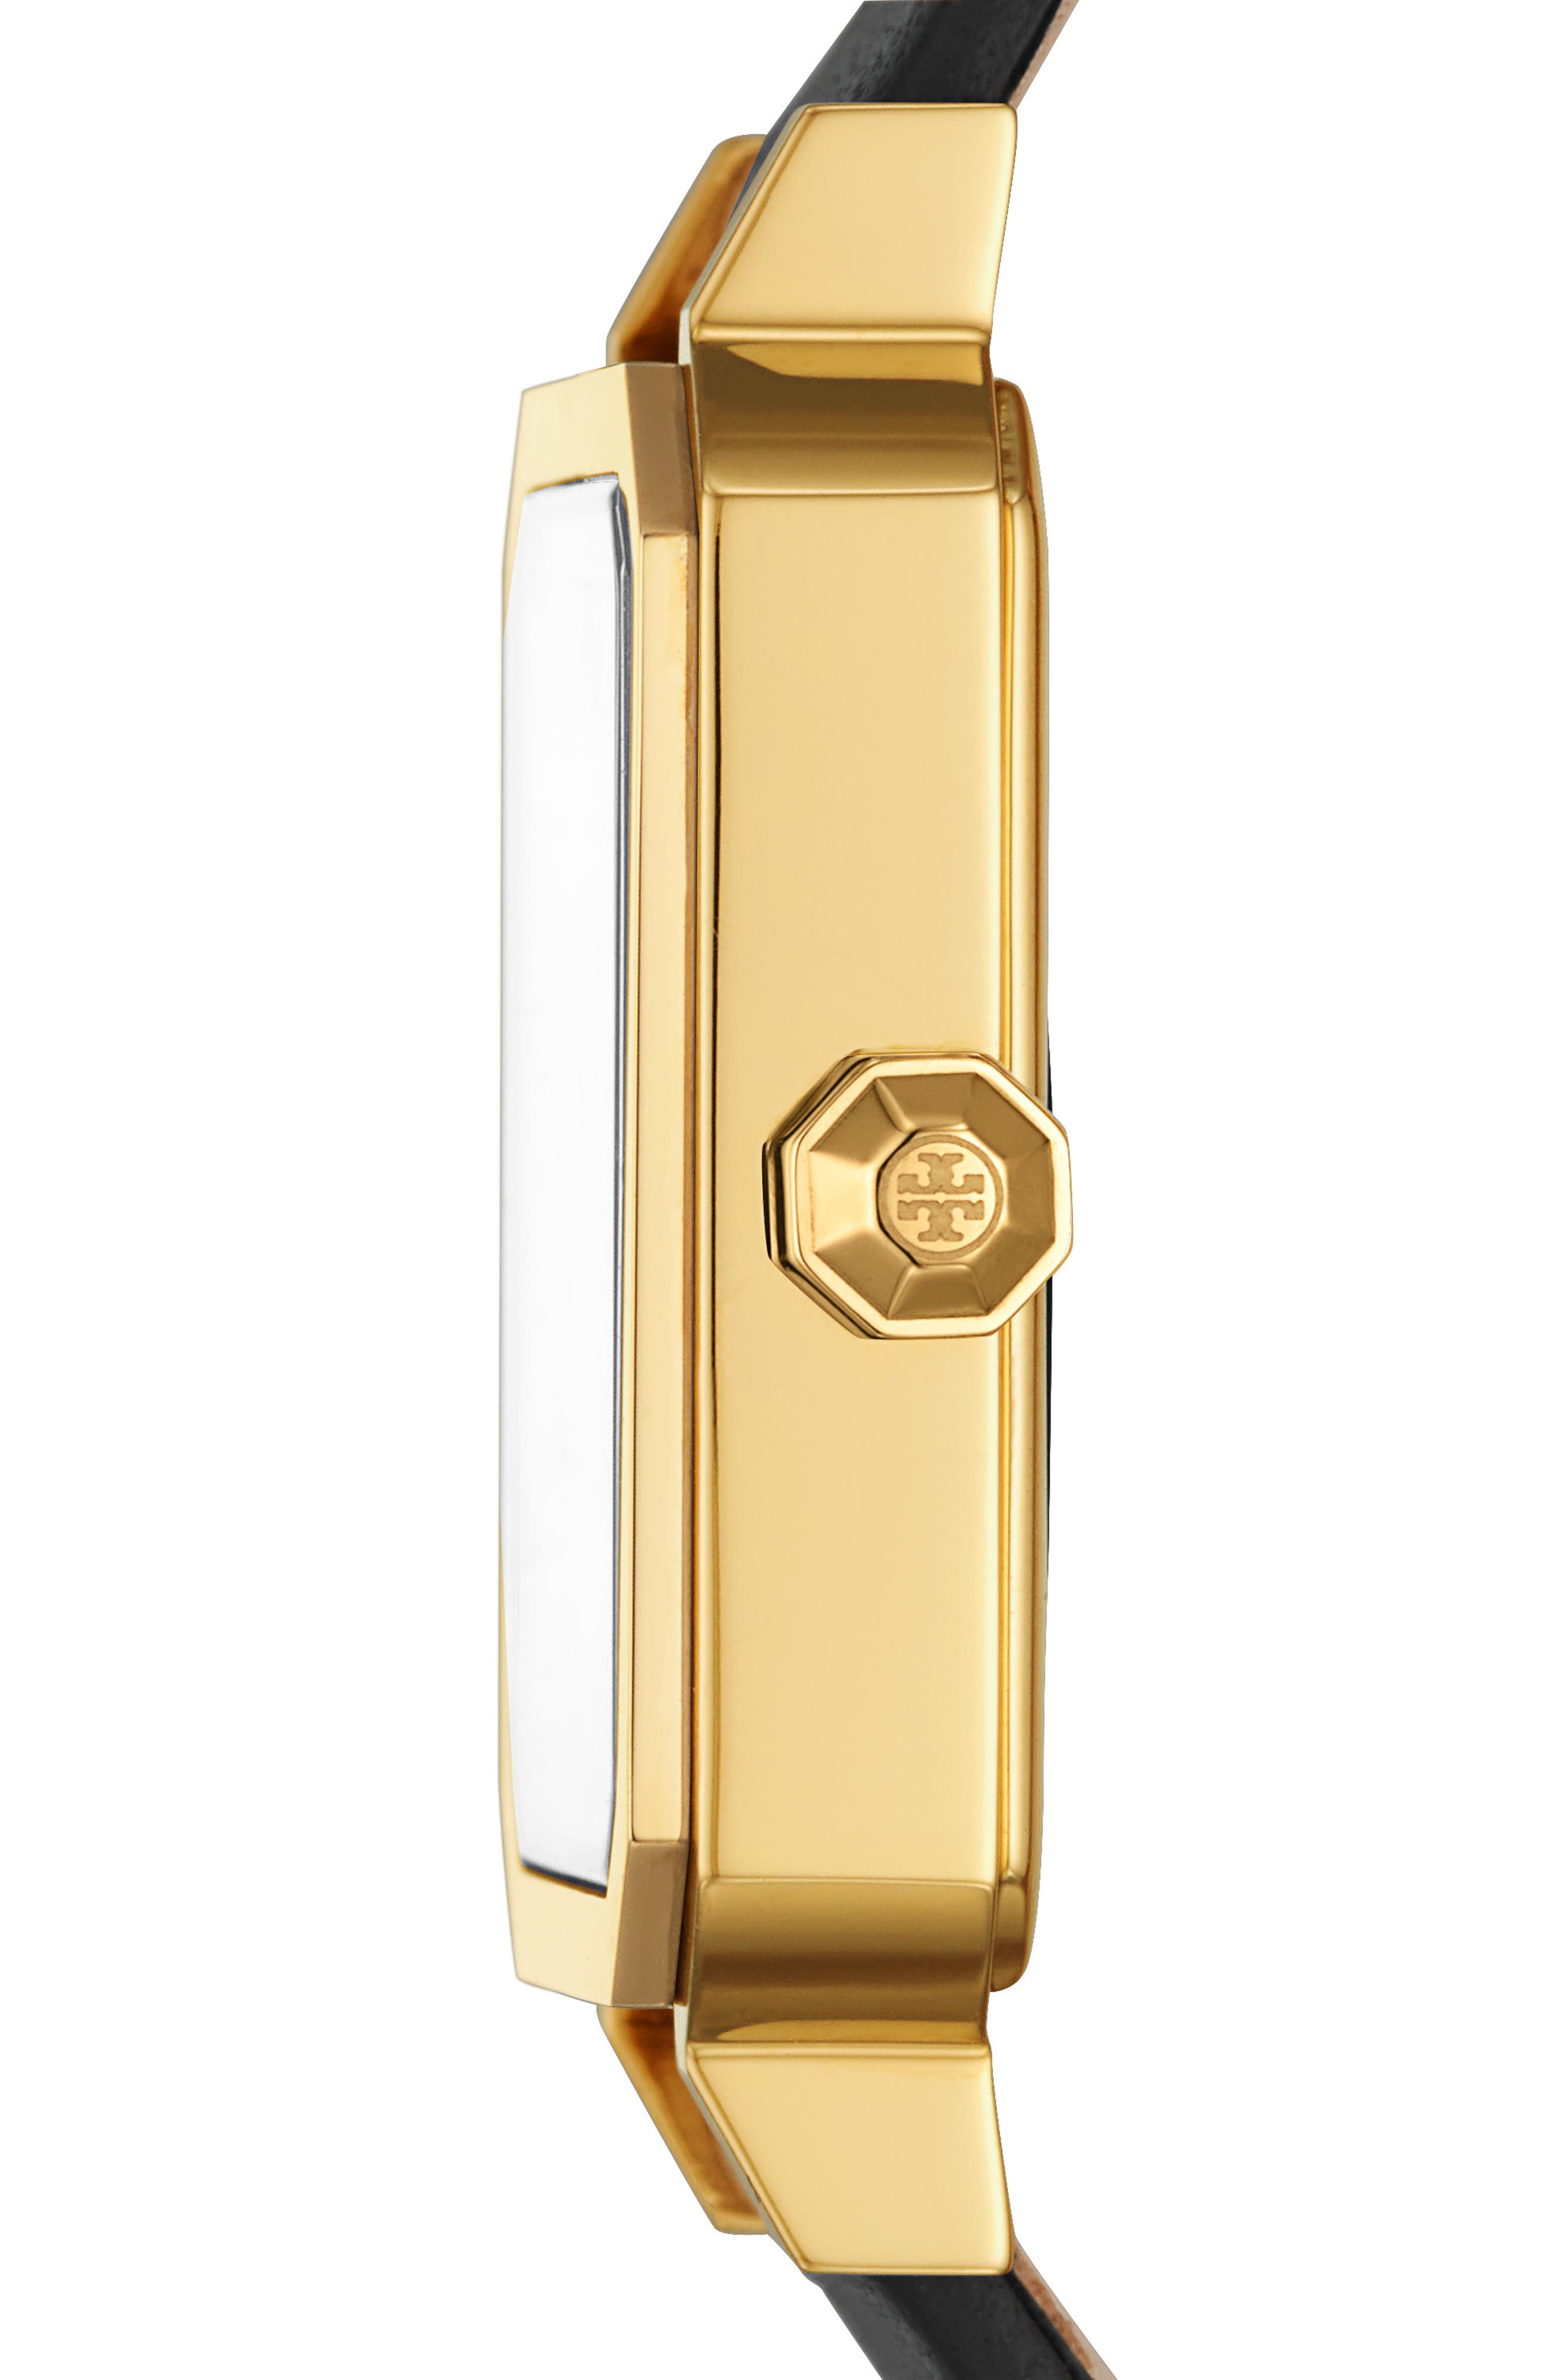 TORY BURCH, Robinson Leather Strap Watch, 27mm x 29mm, Alternate thumbnail 2, color, BLACK/ WHITE/ GOLD